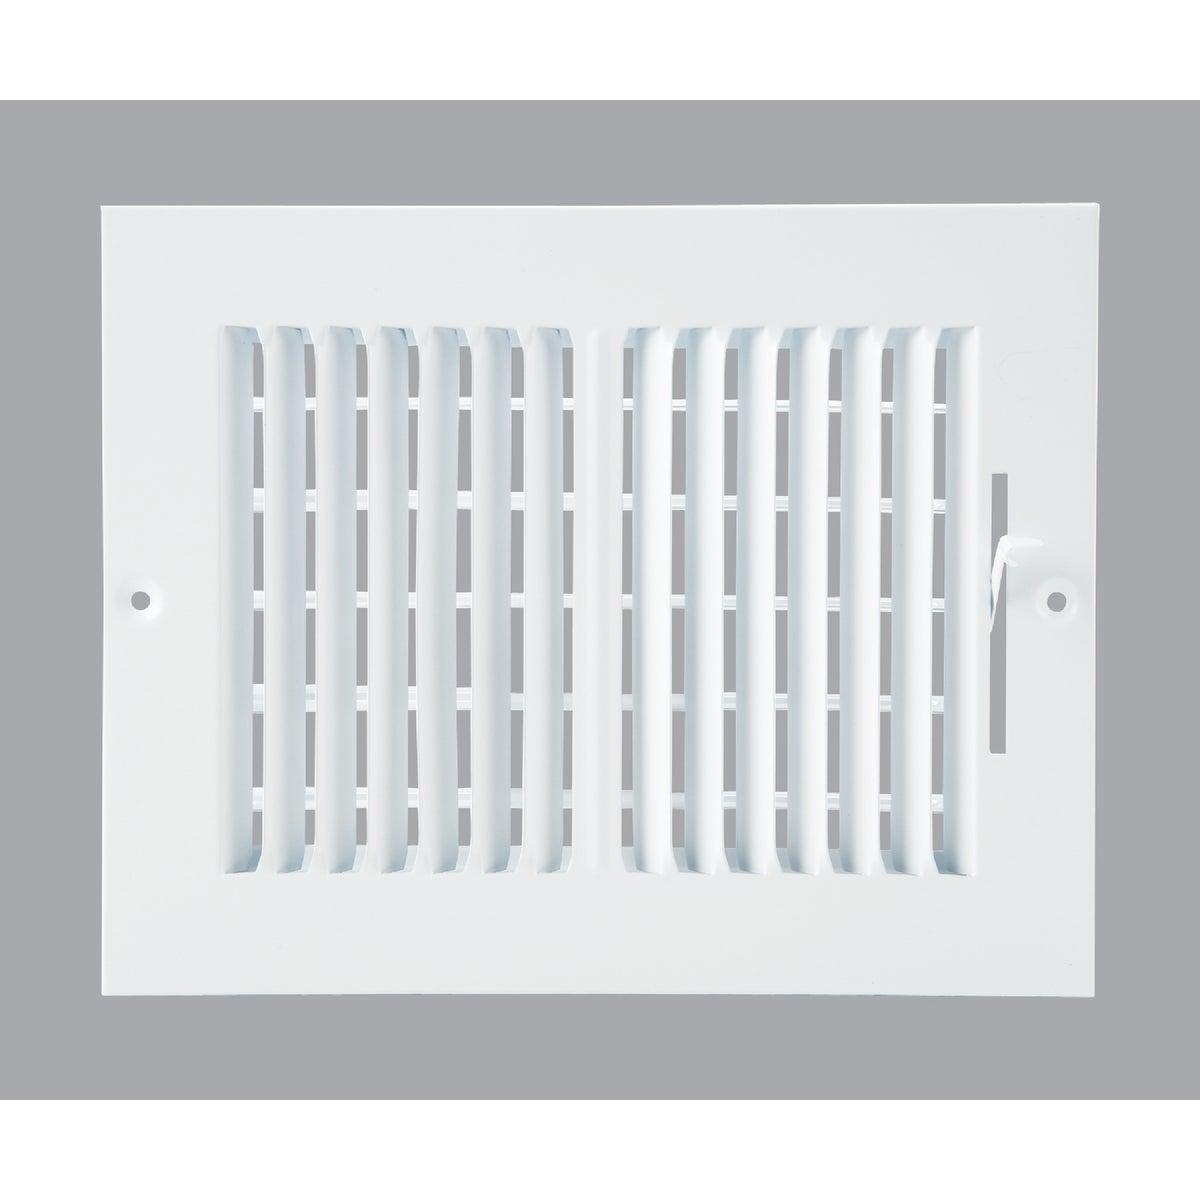 6X8 WHT WALL REGISTER - 2SW0806WH-B by Do it Best